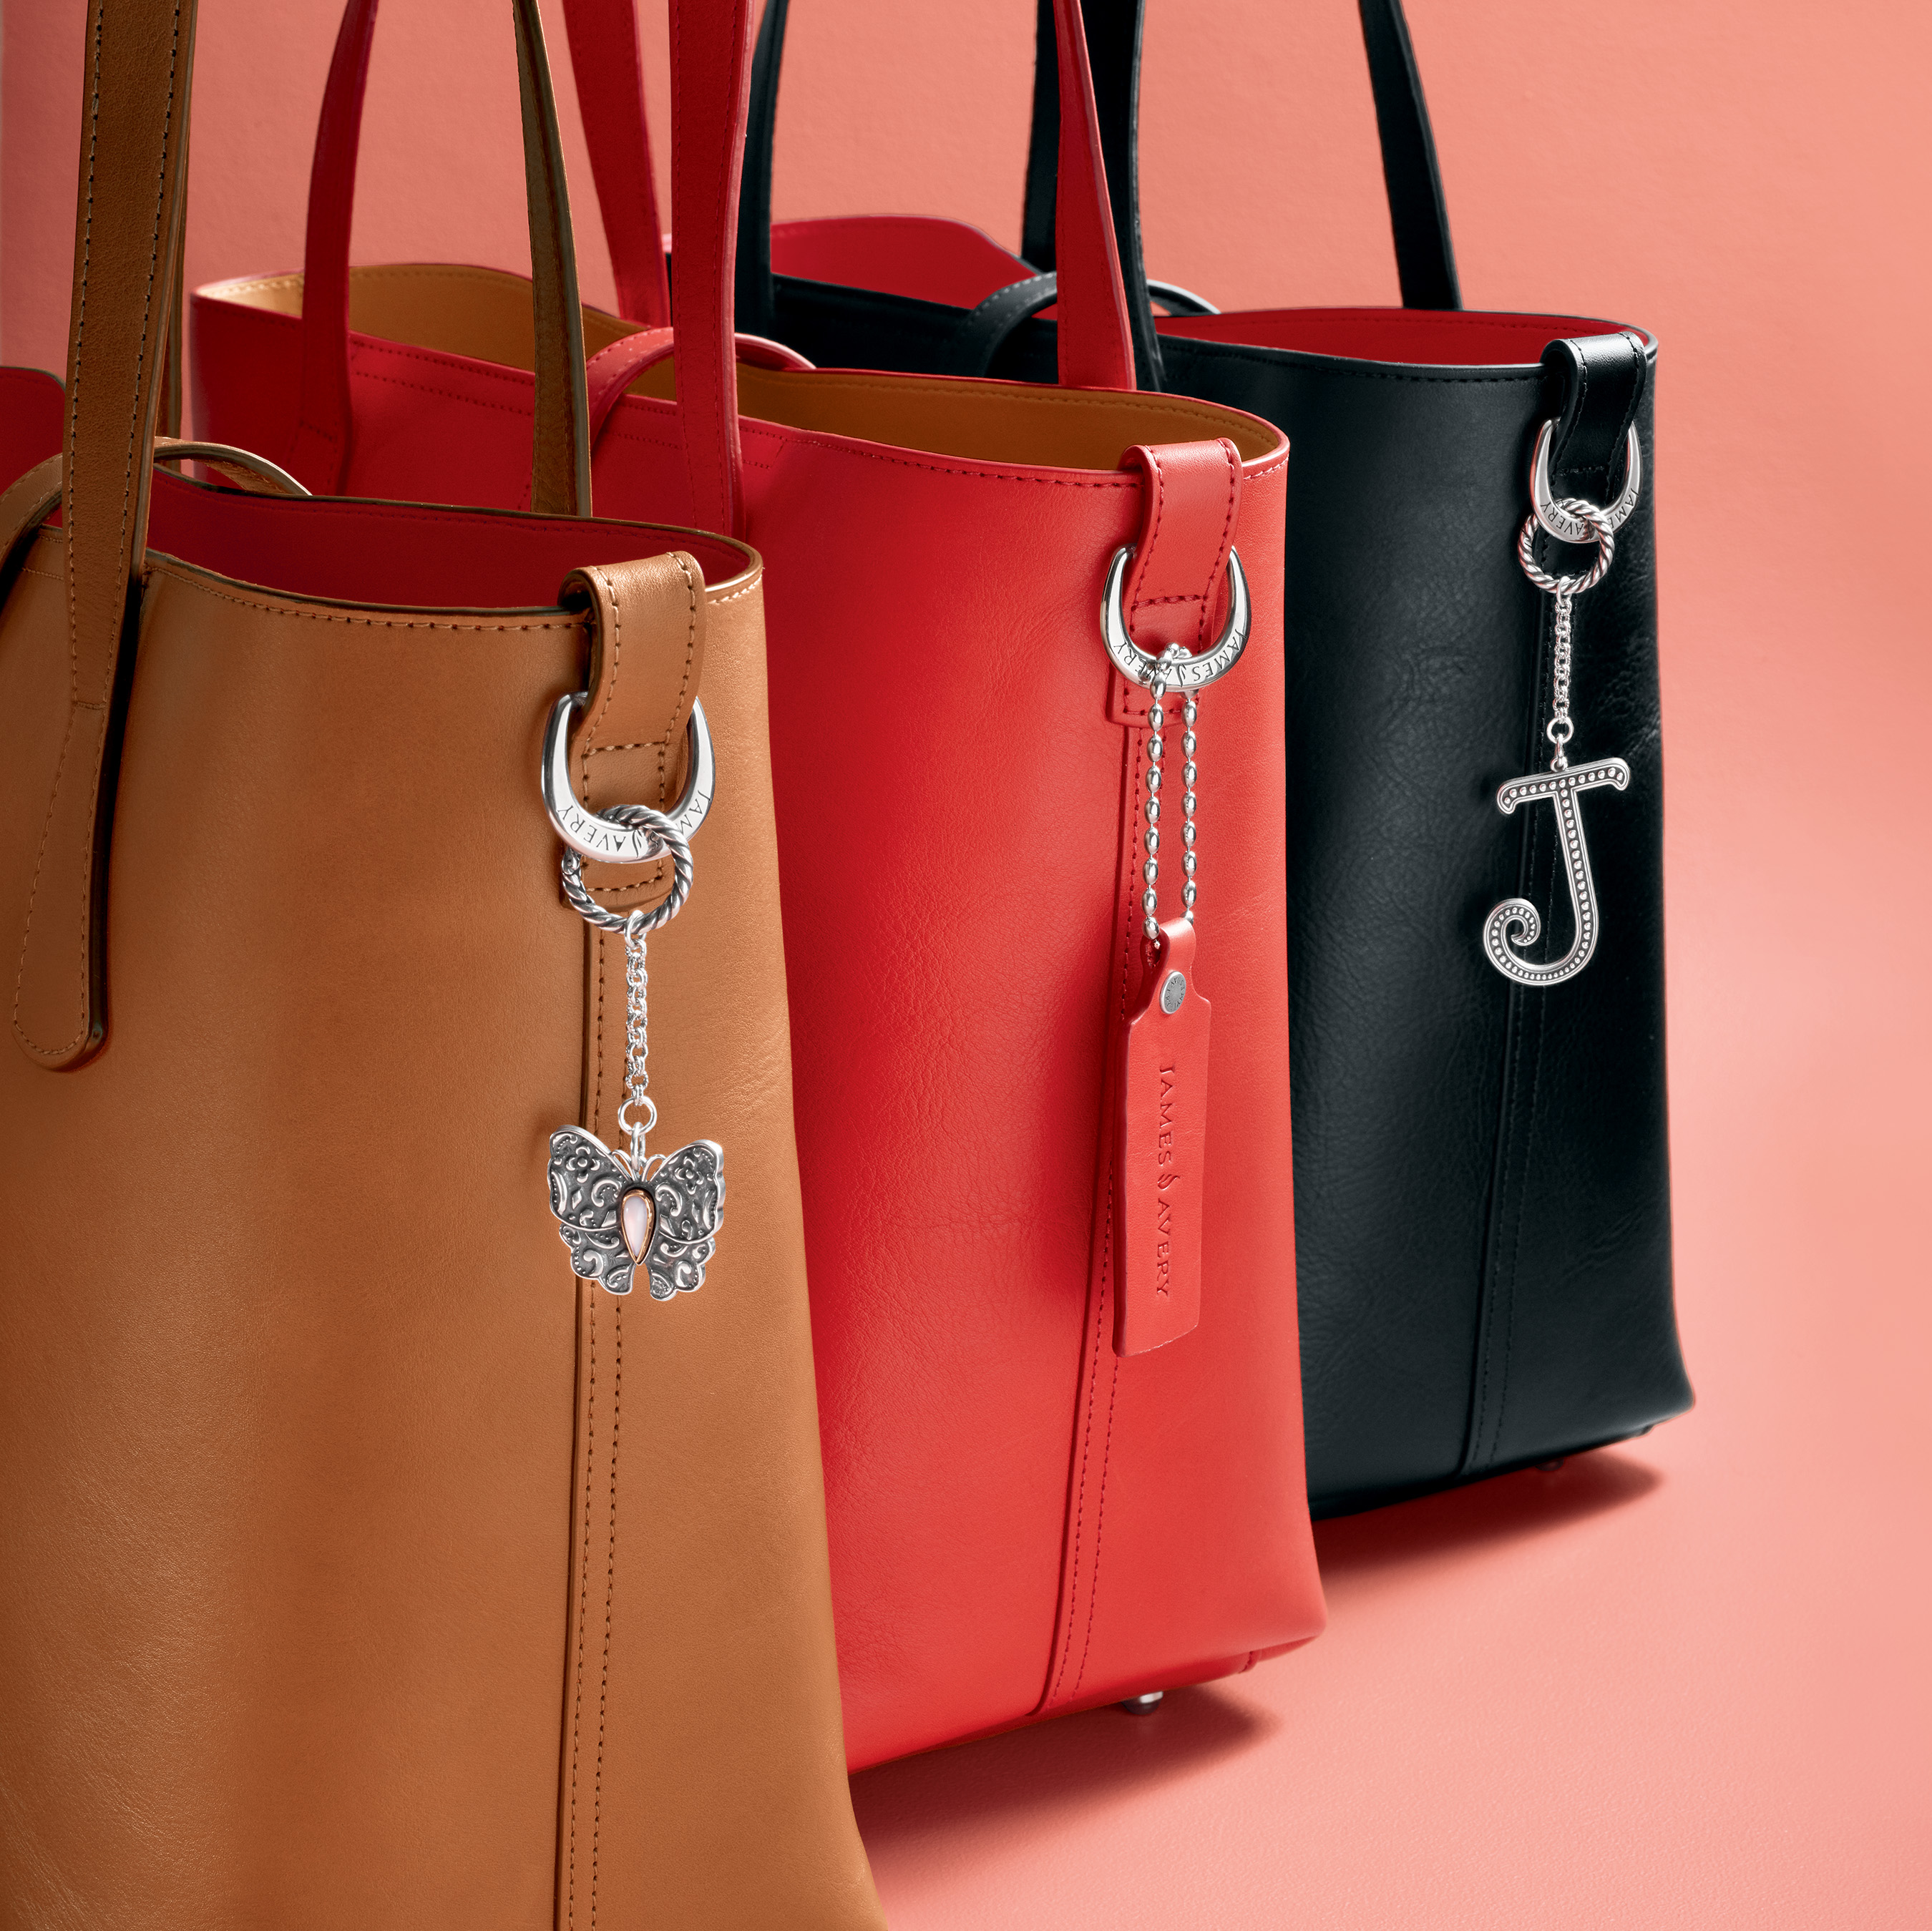 discover the james avery artisan jewelry handbag collection